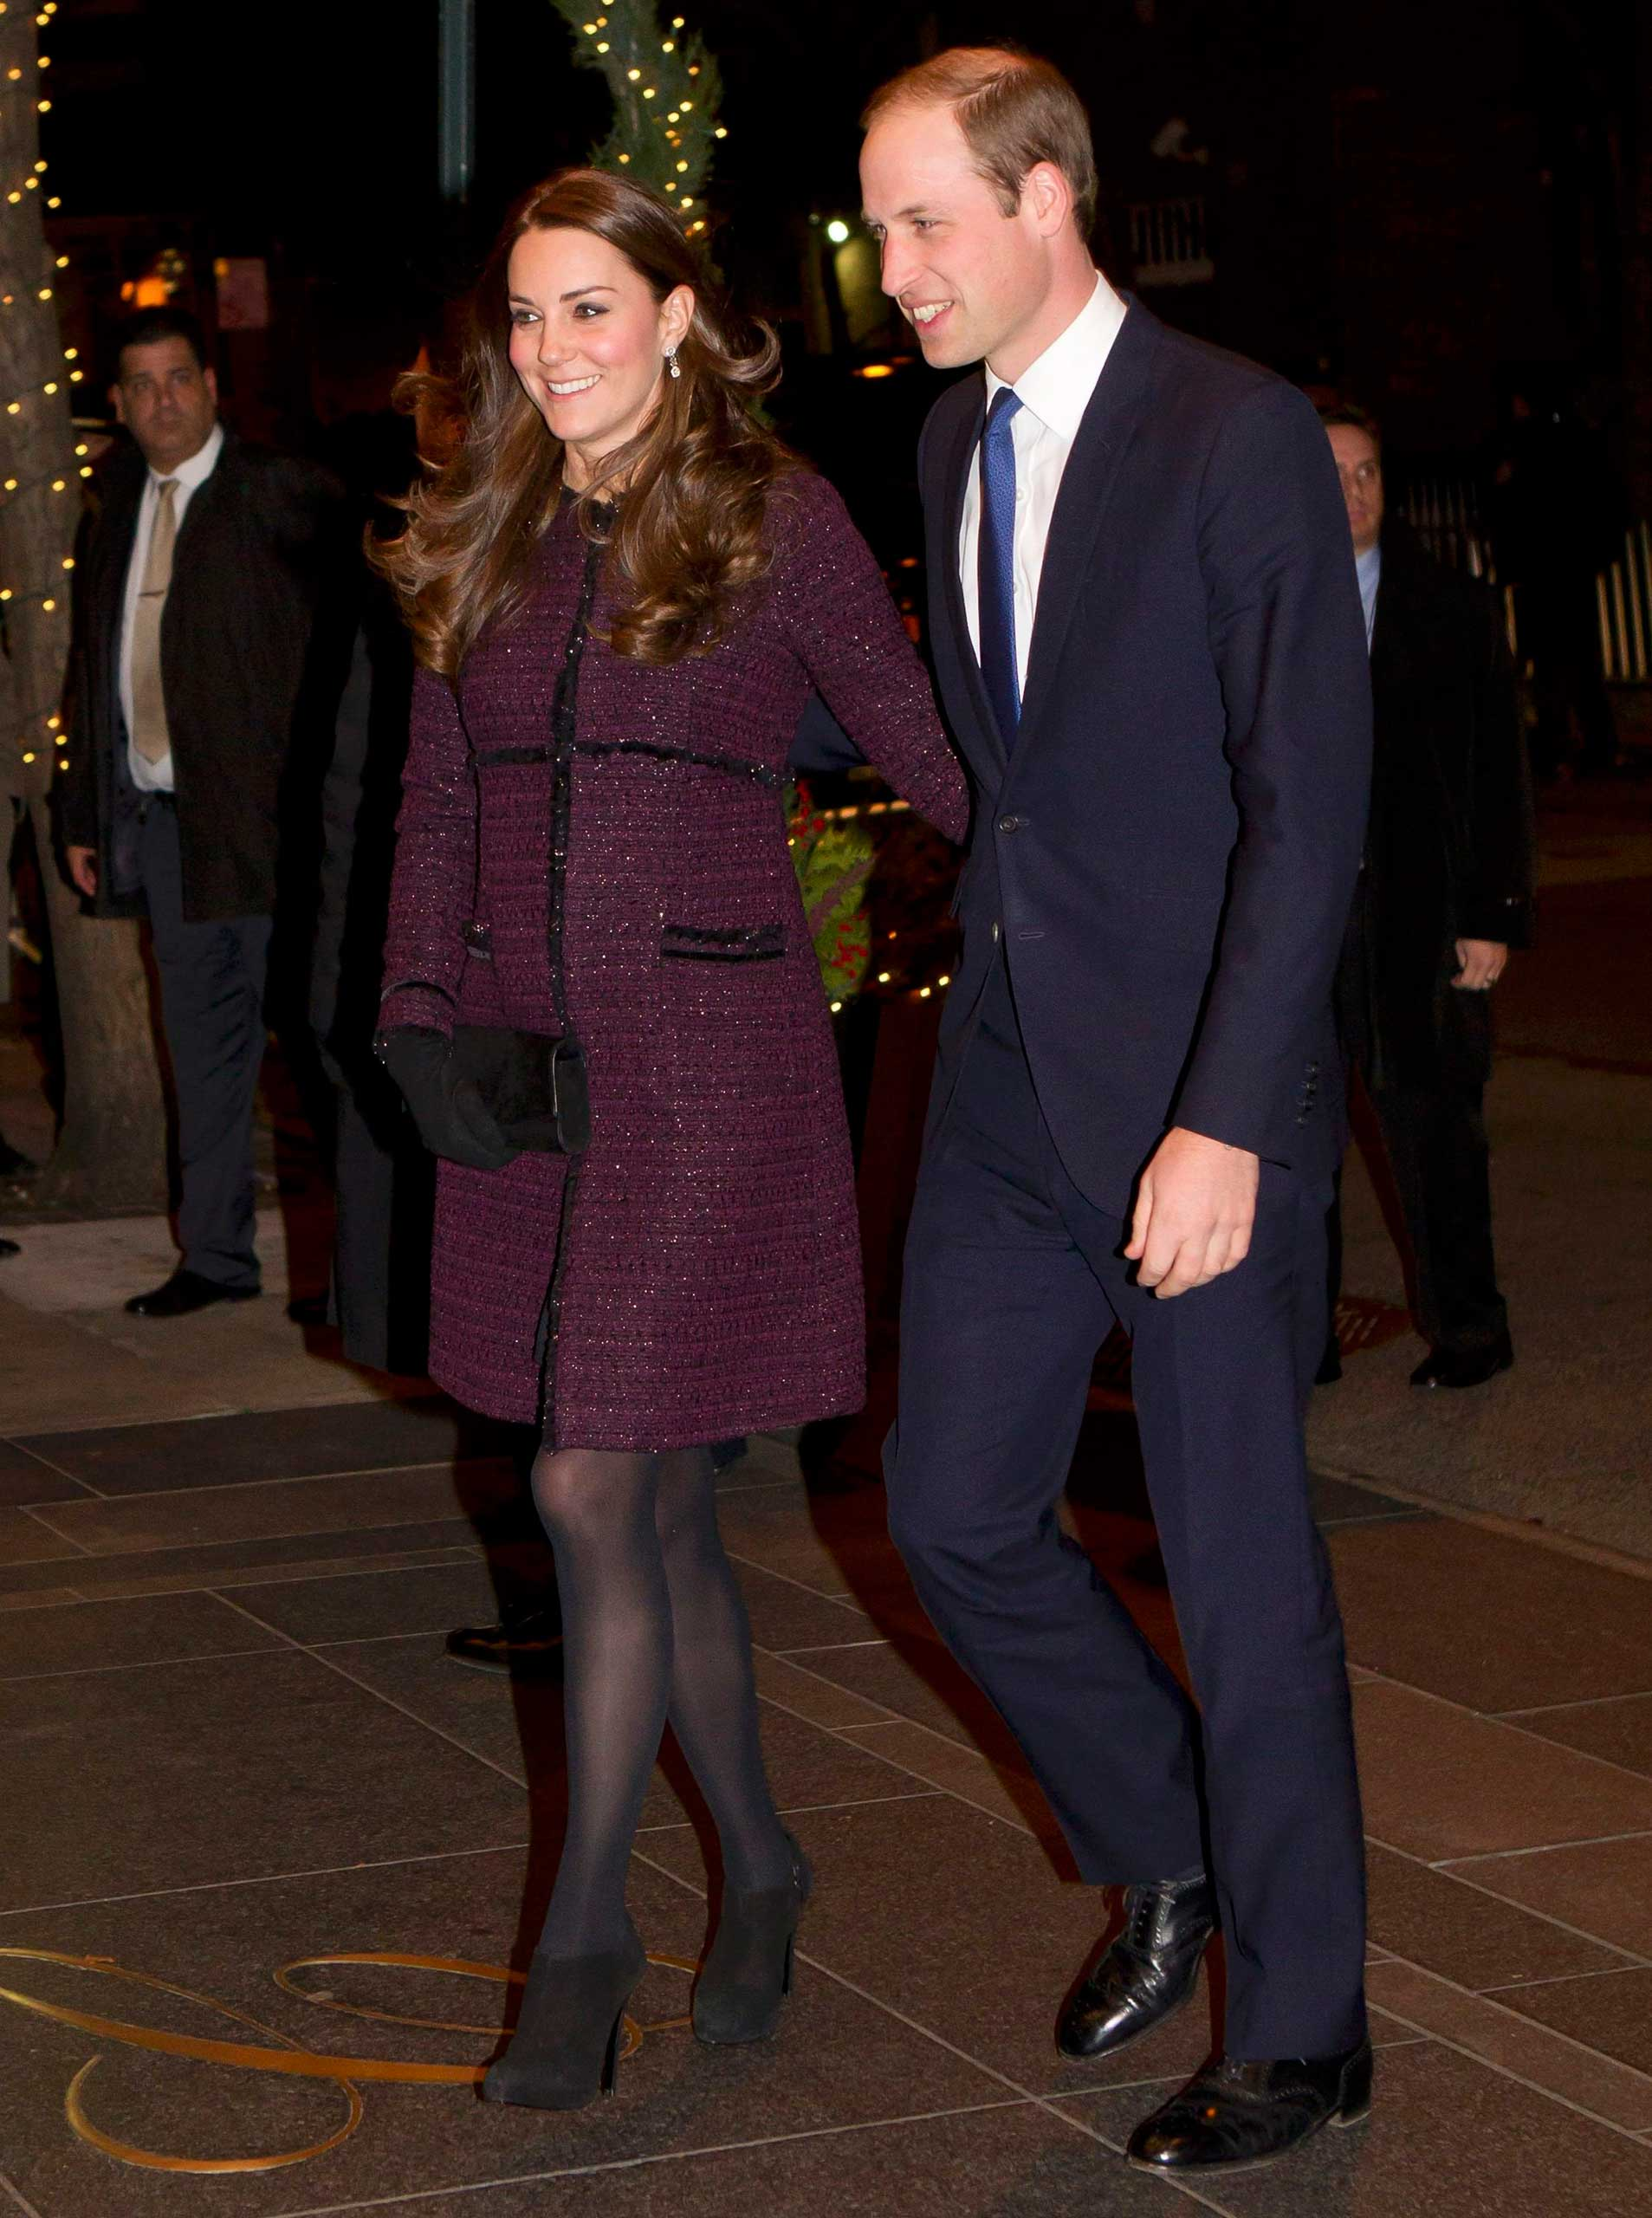 Catherine, Duchess of Cambridge arrives at the Carlyle hotel in New York on Dec. 7, 2014.